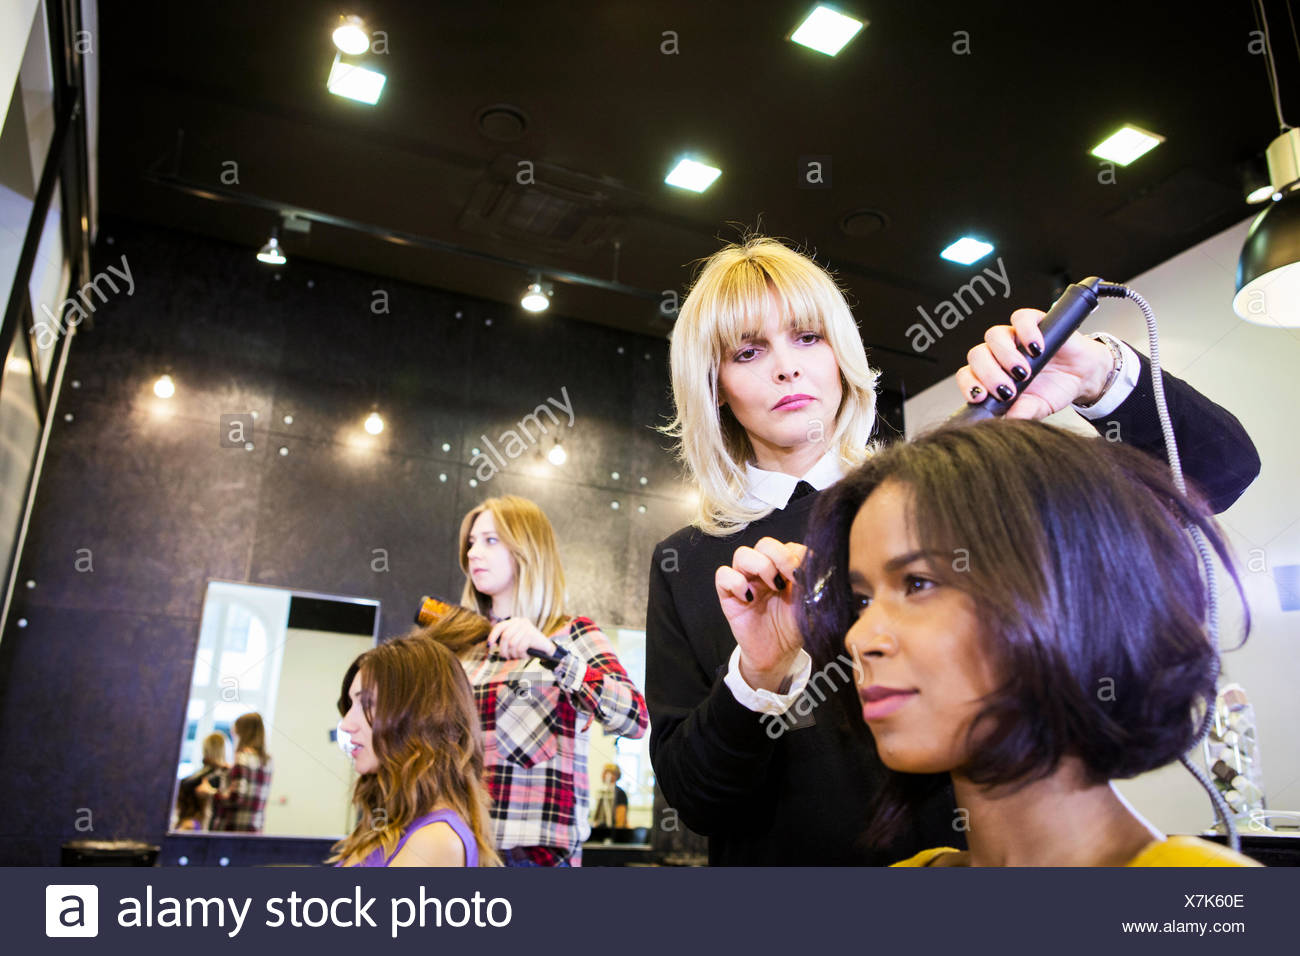 Hairdresser drying customer's hair with hairdryer - Stock Image